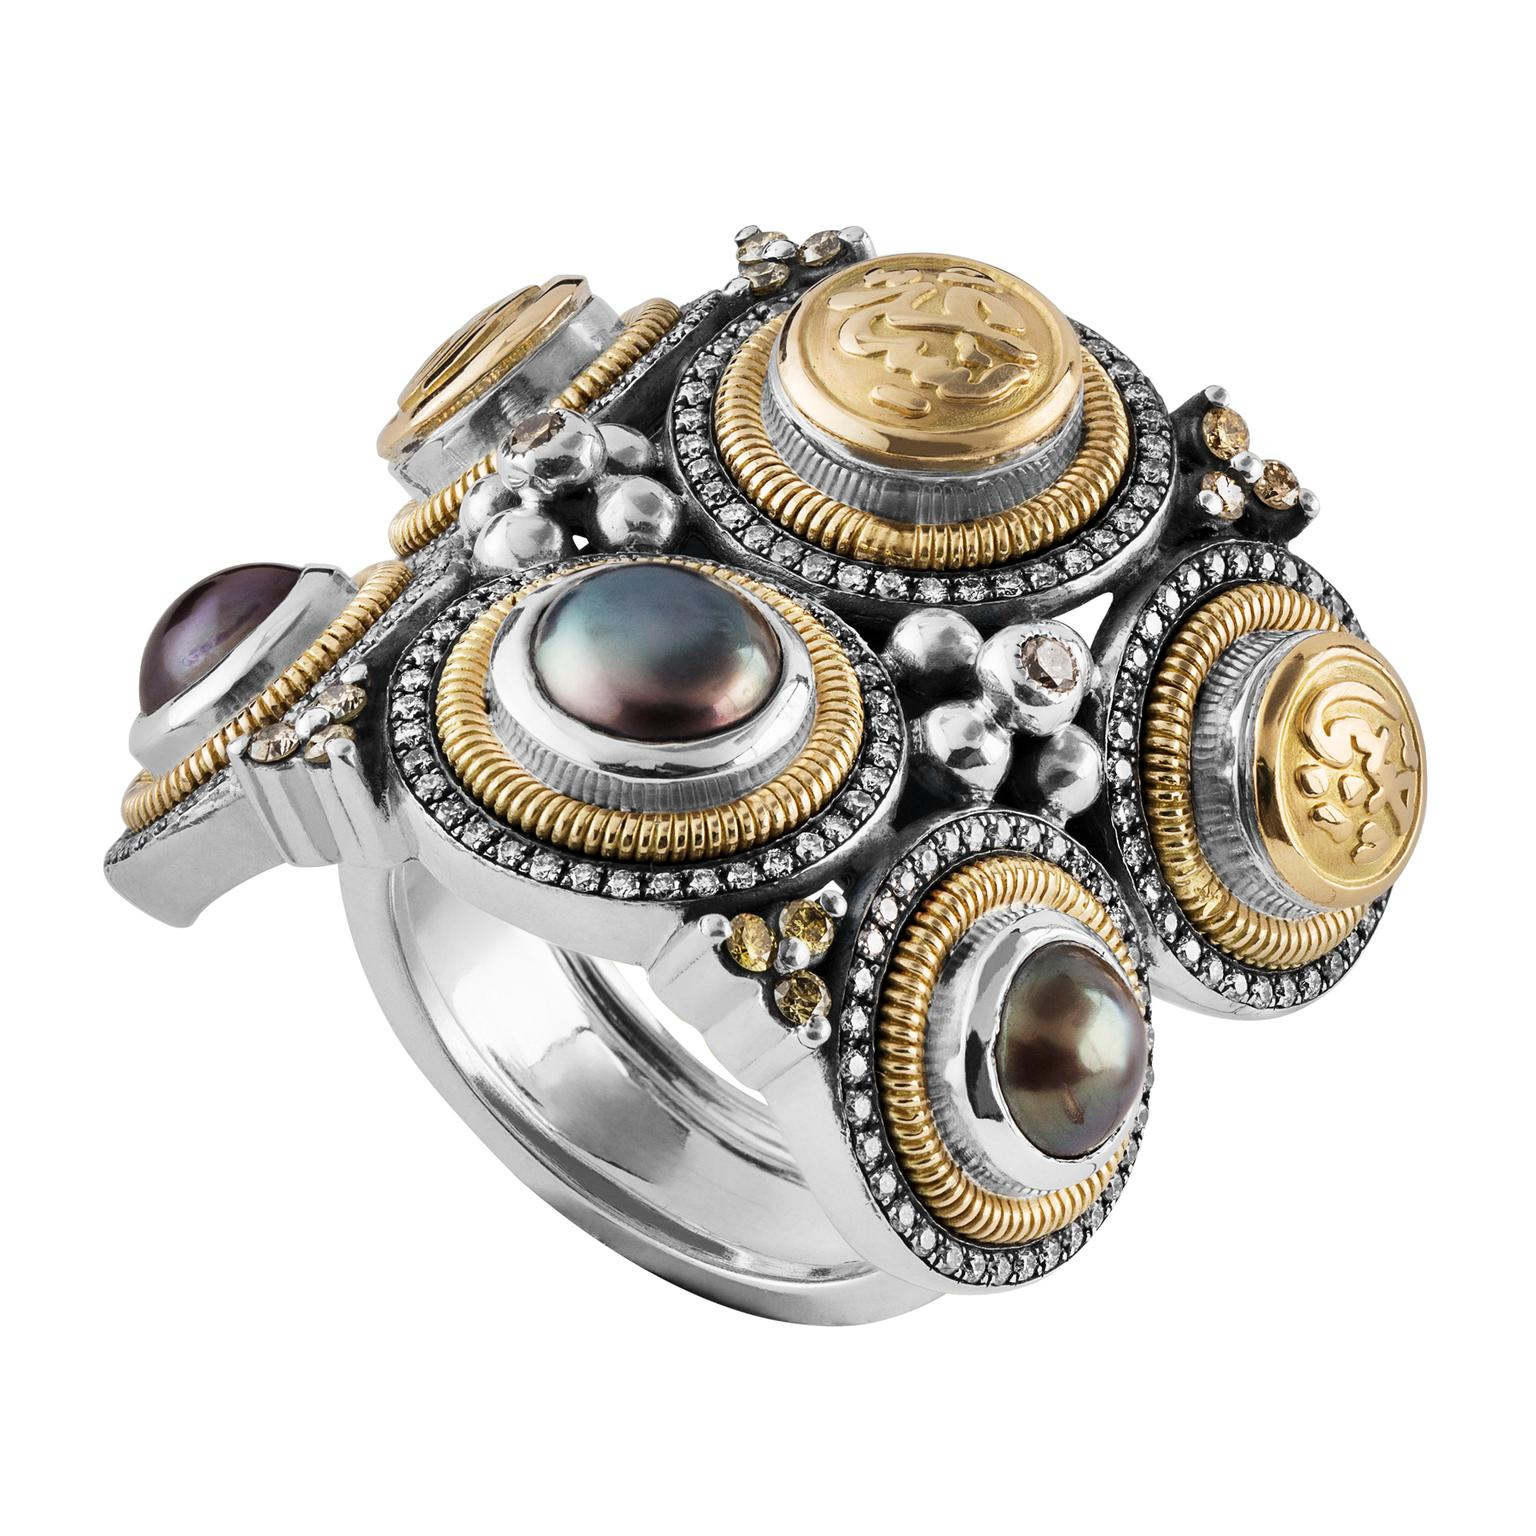 Azza Fahmy Wonders of Nature Indian inspired tribal ring with grey pearls and diamonds